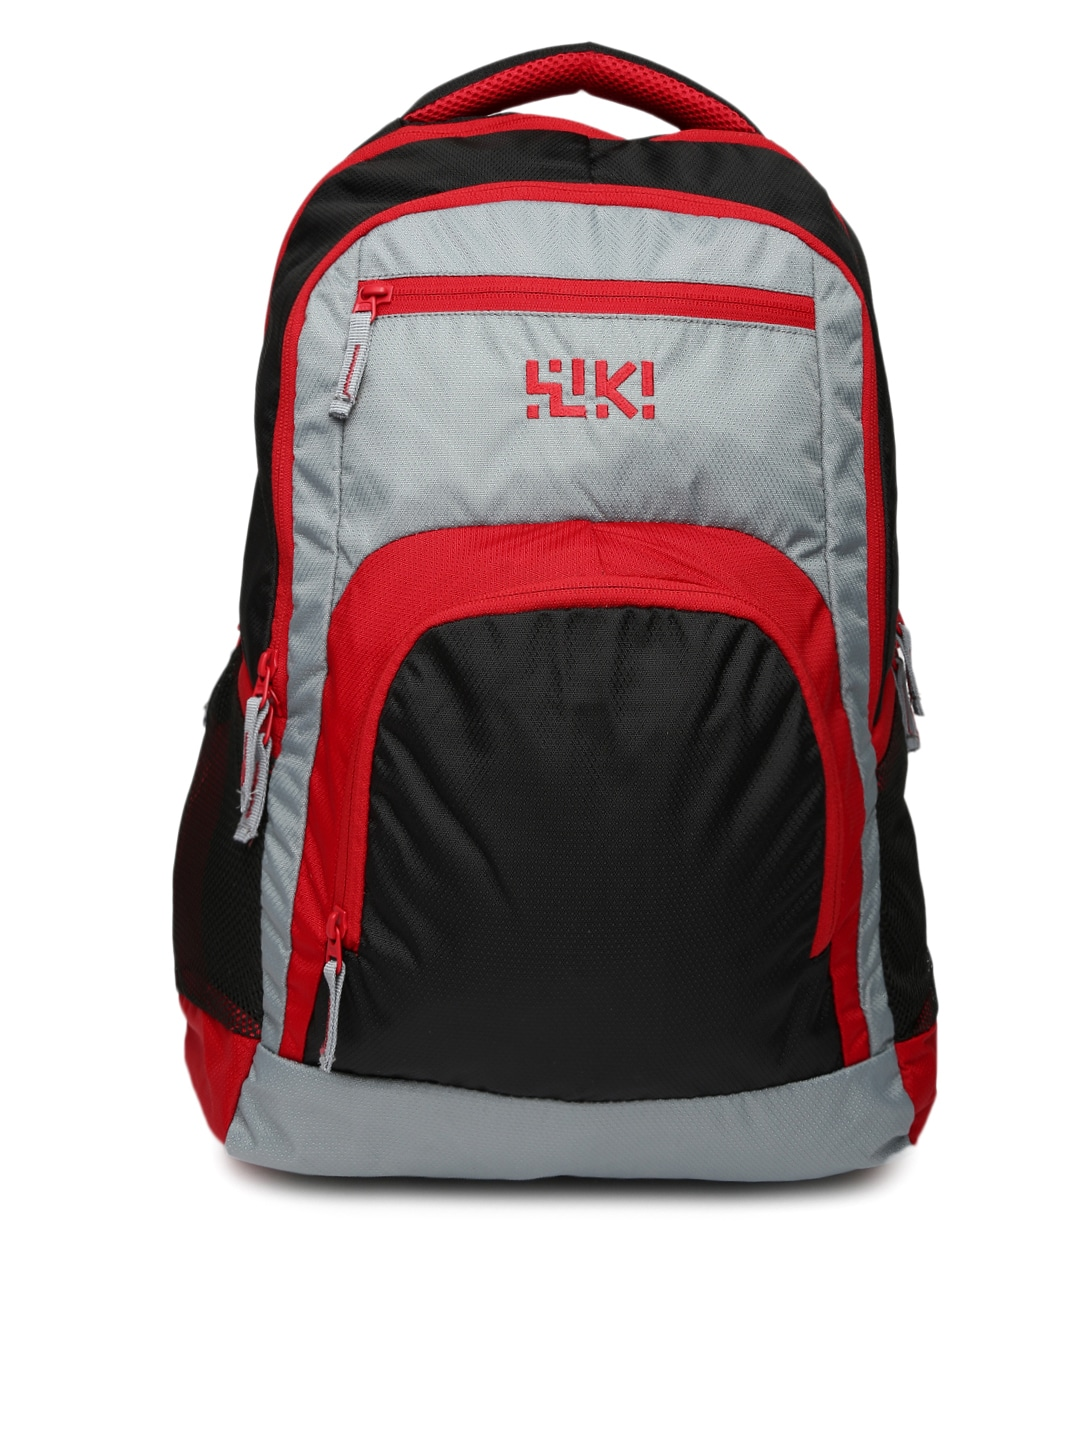 Wiki by Wildcraft Unisex Black & Red Backpack